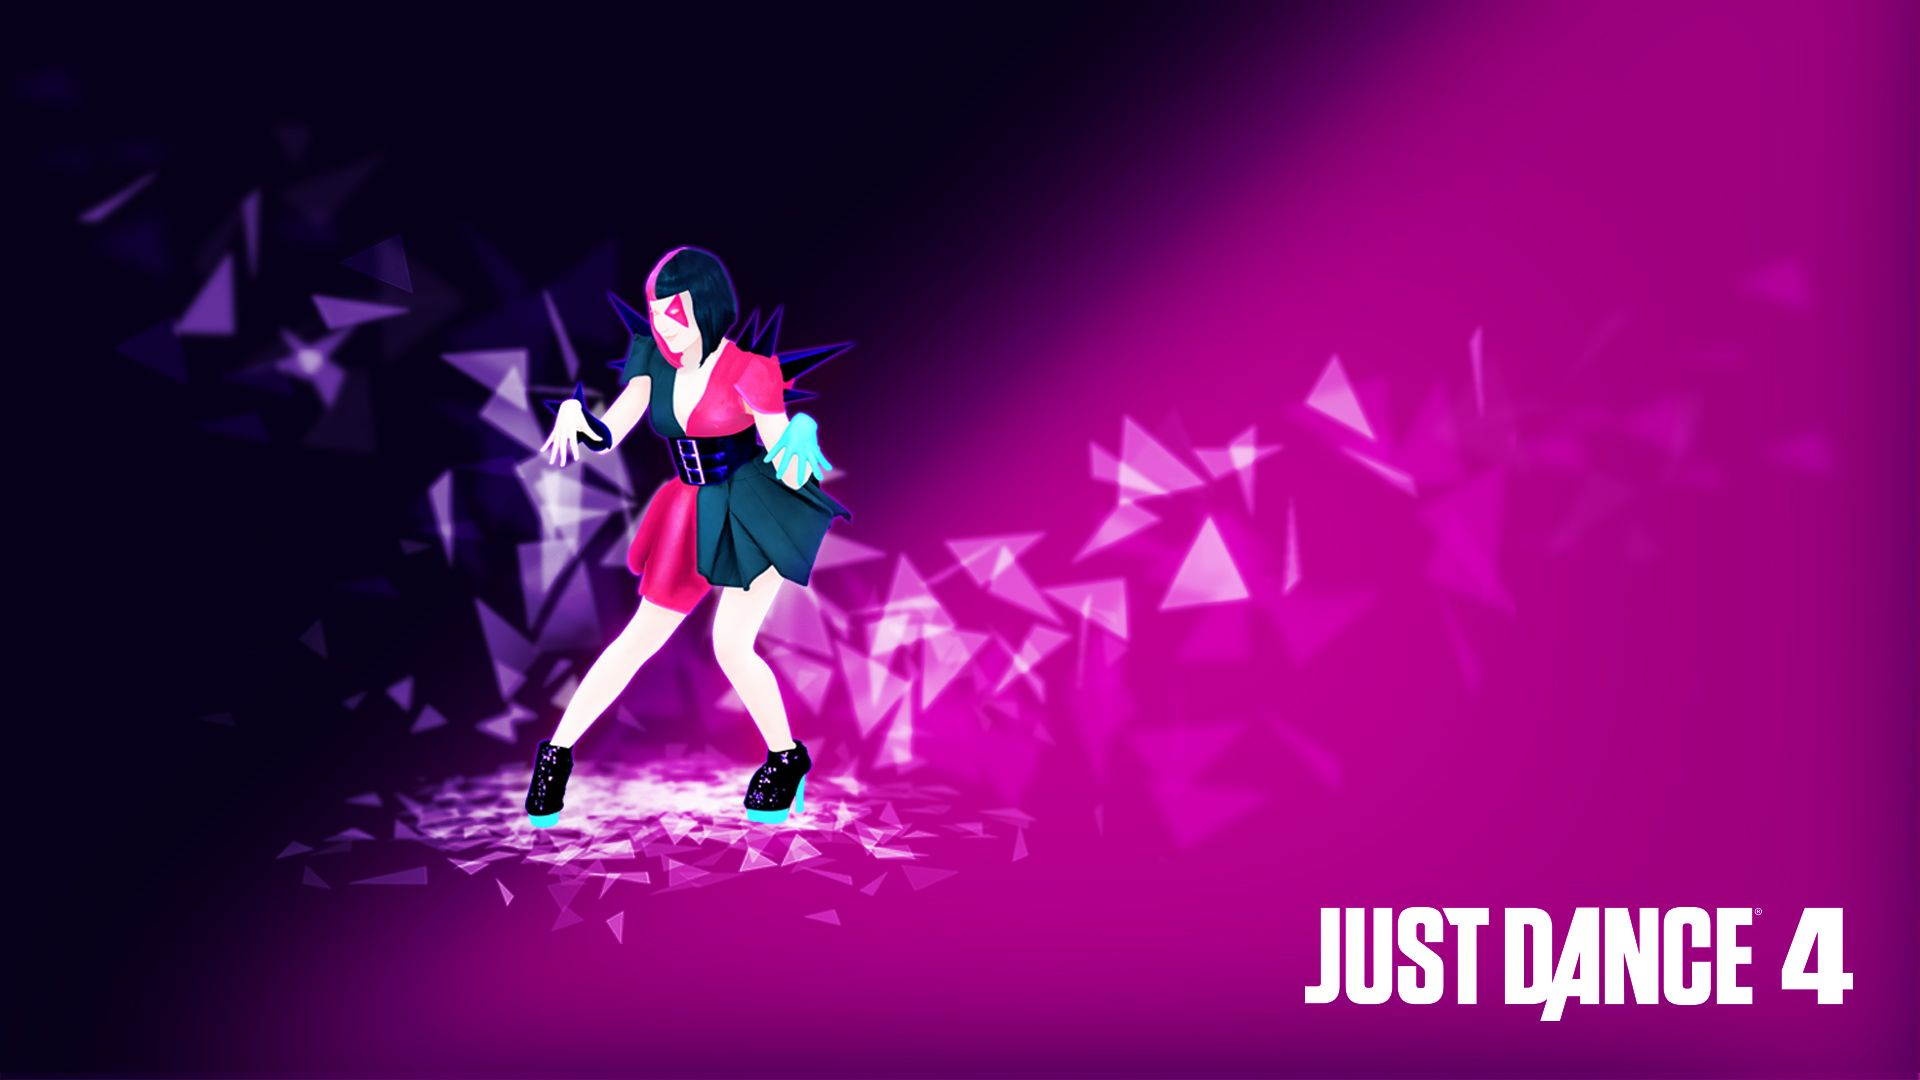 Just Dance 4 Disturbia Wallpaper With Images Just Dance Just